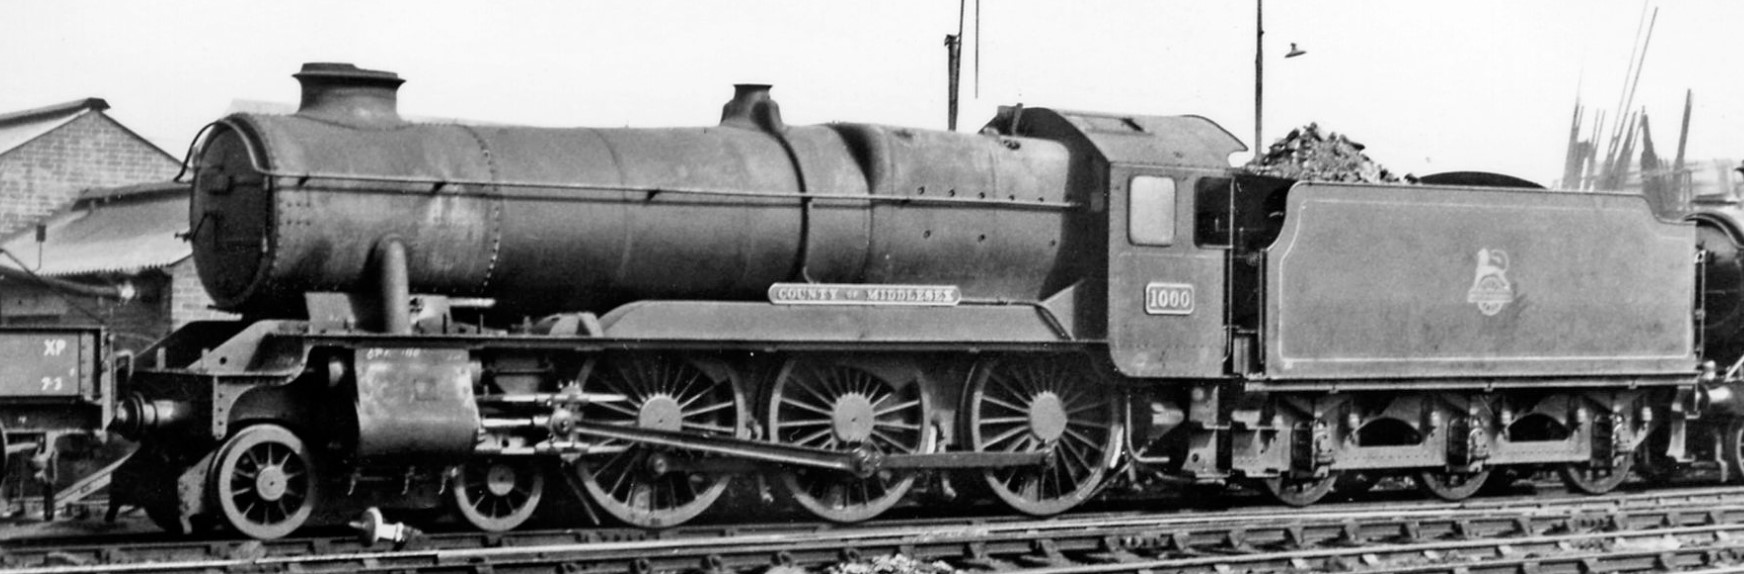 1000 'County of Middlesex' at Bristol Bath Road Depot in  August 1958. ©Ben Brooksbank